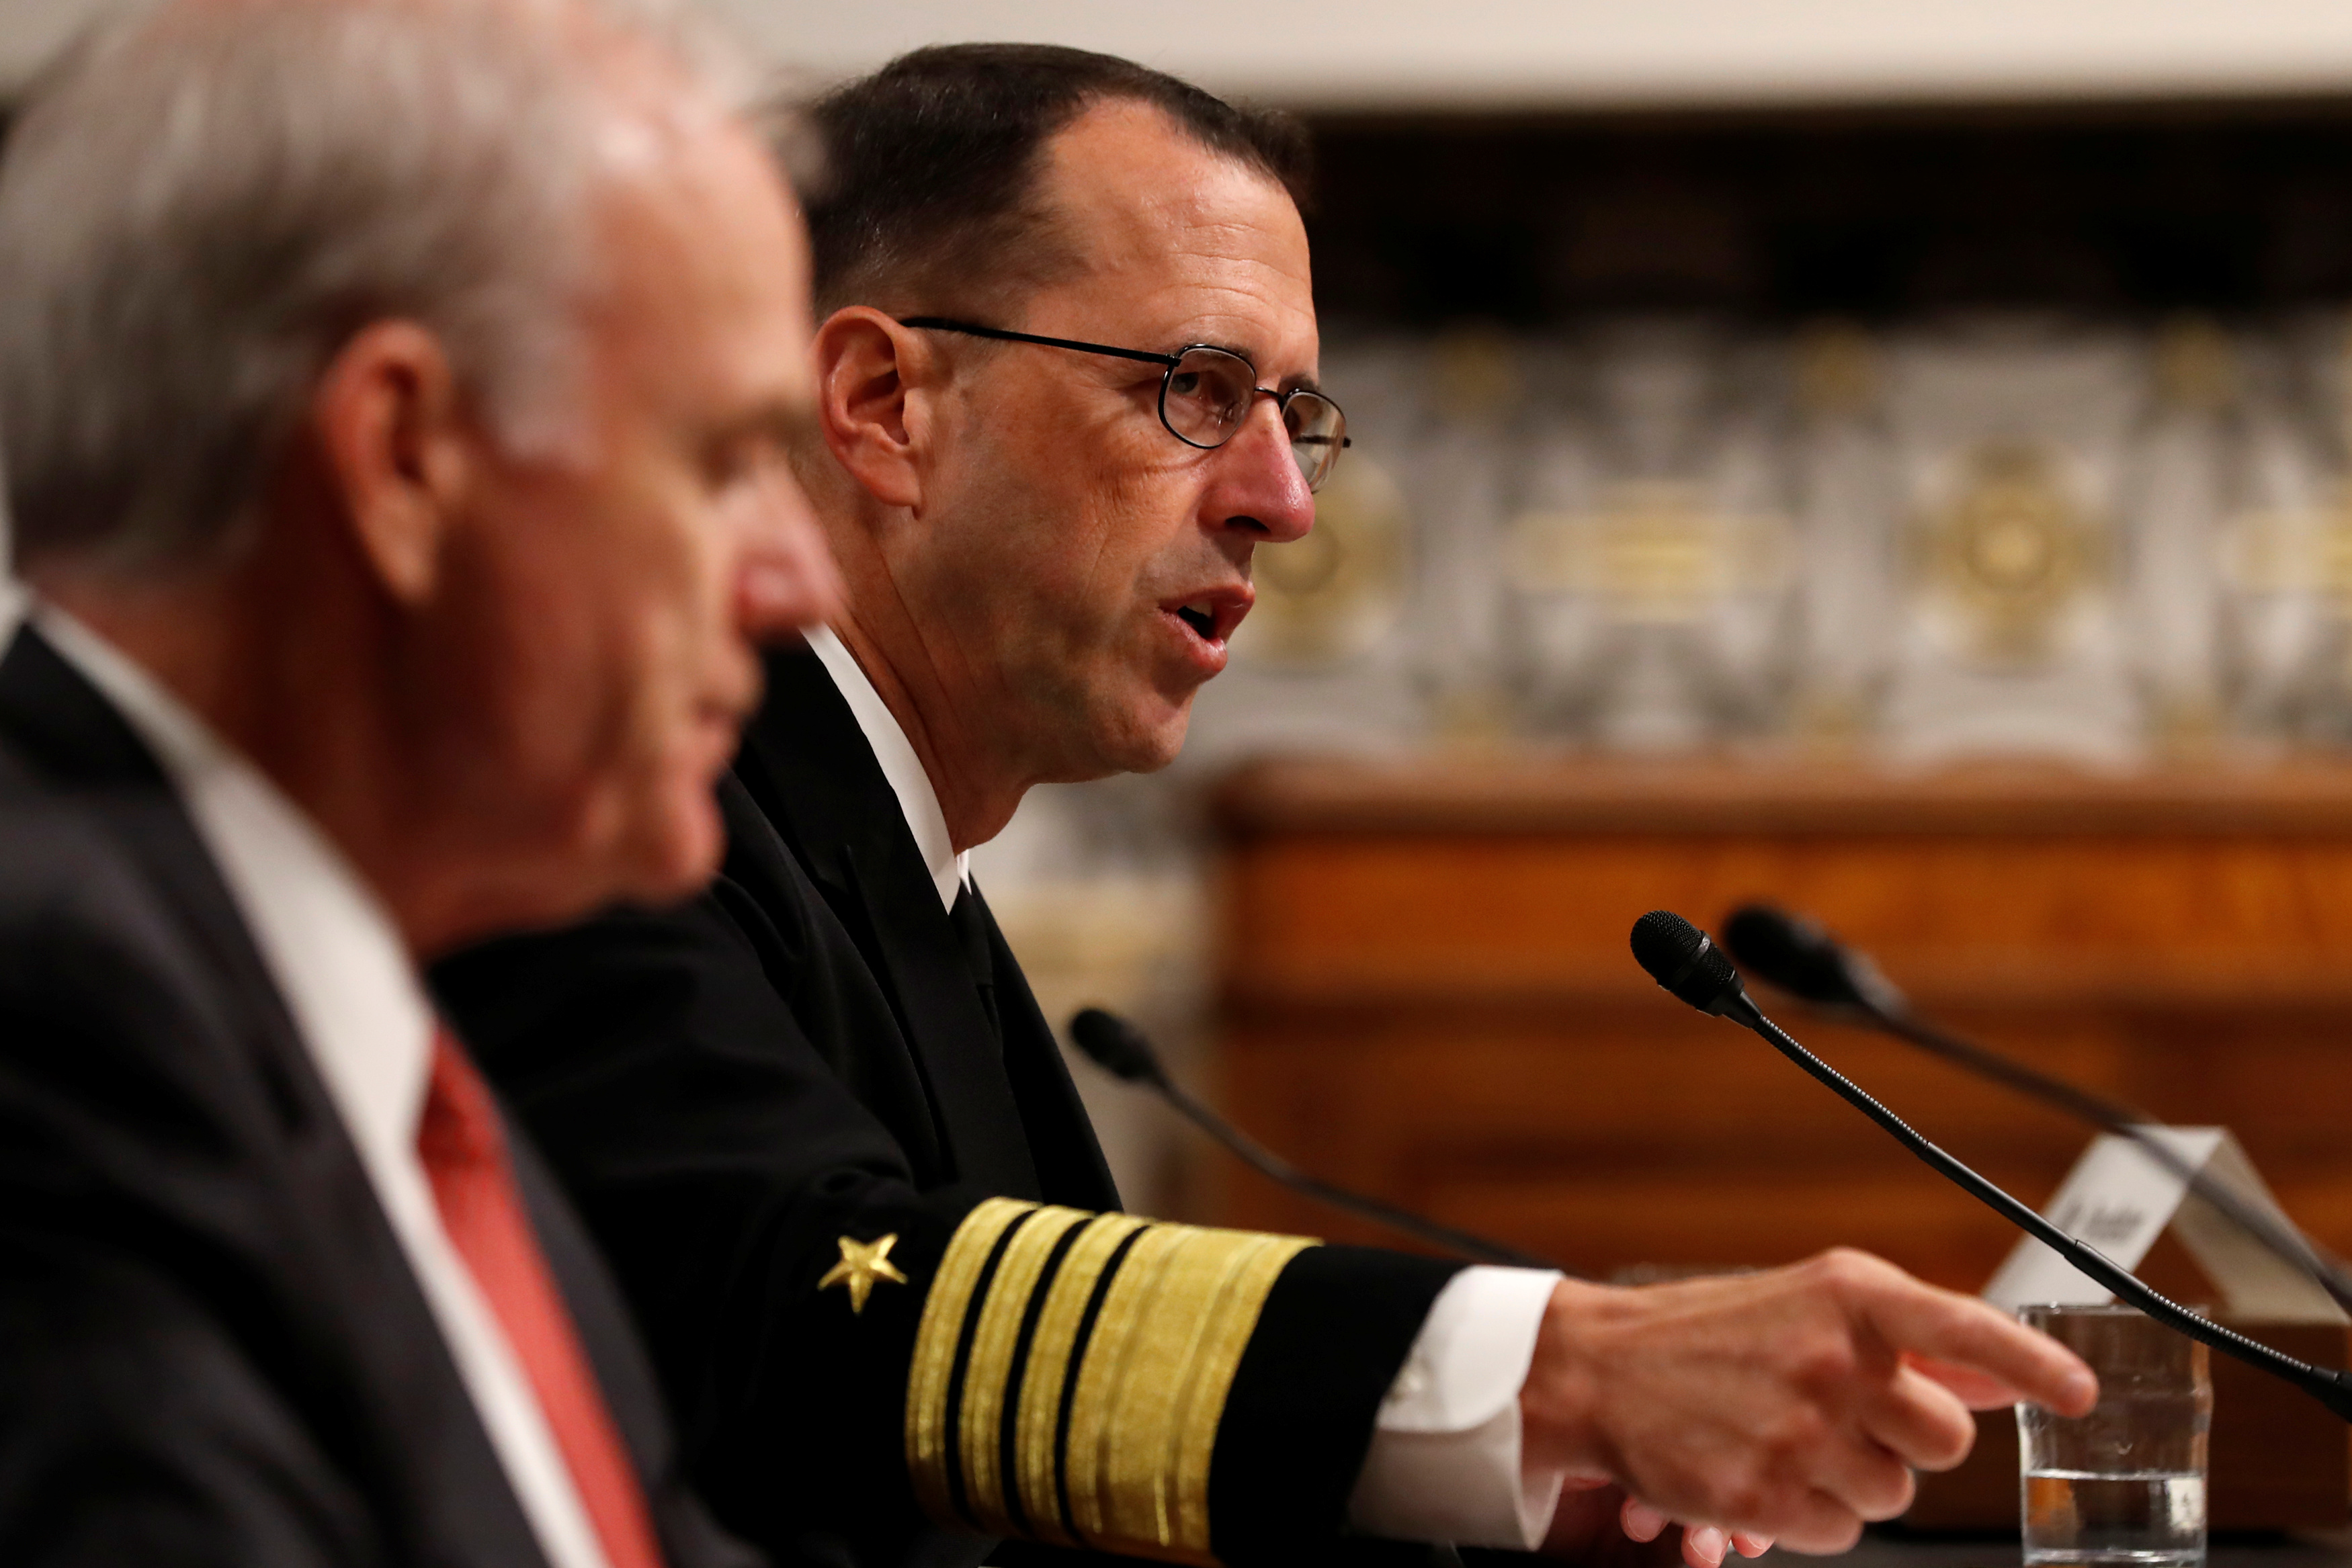 A conversation with the Chief of Naval Operations